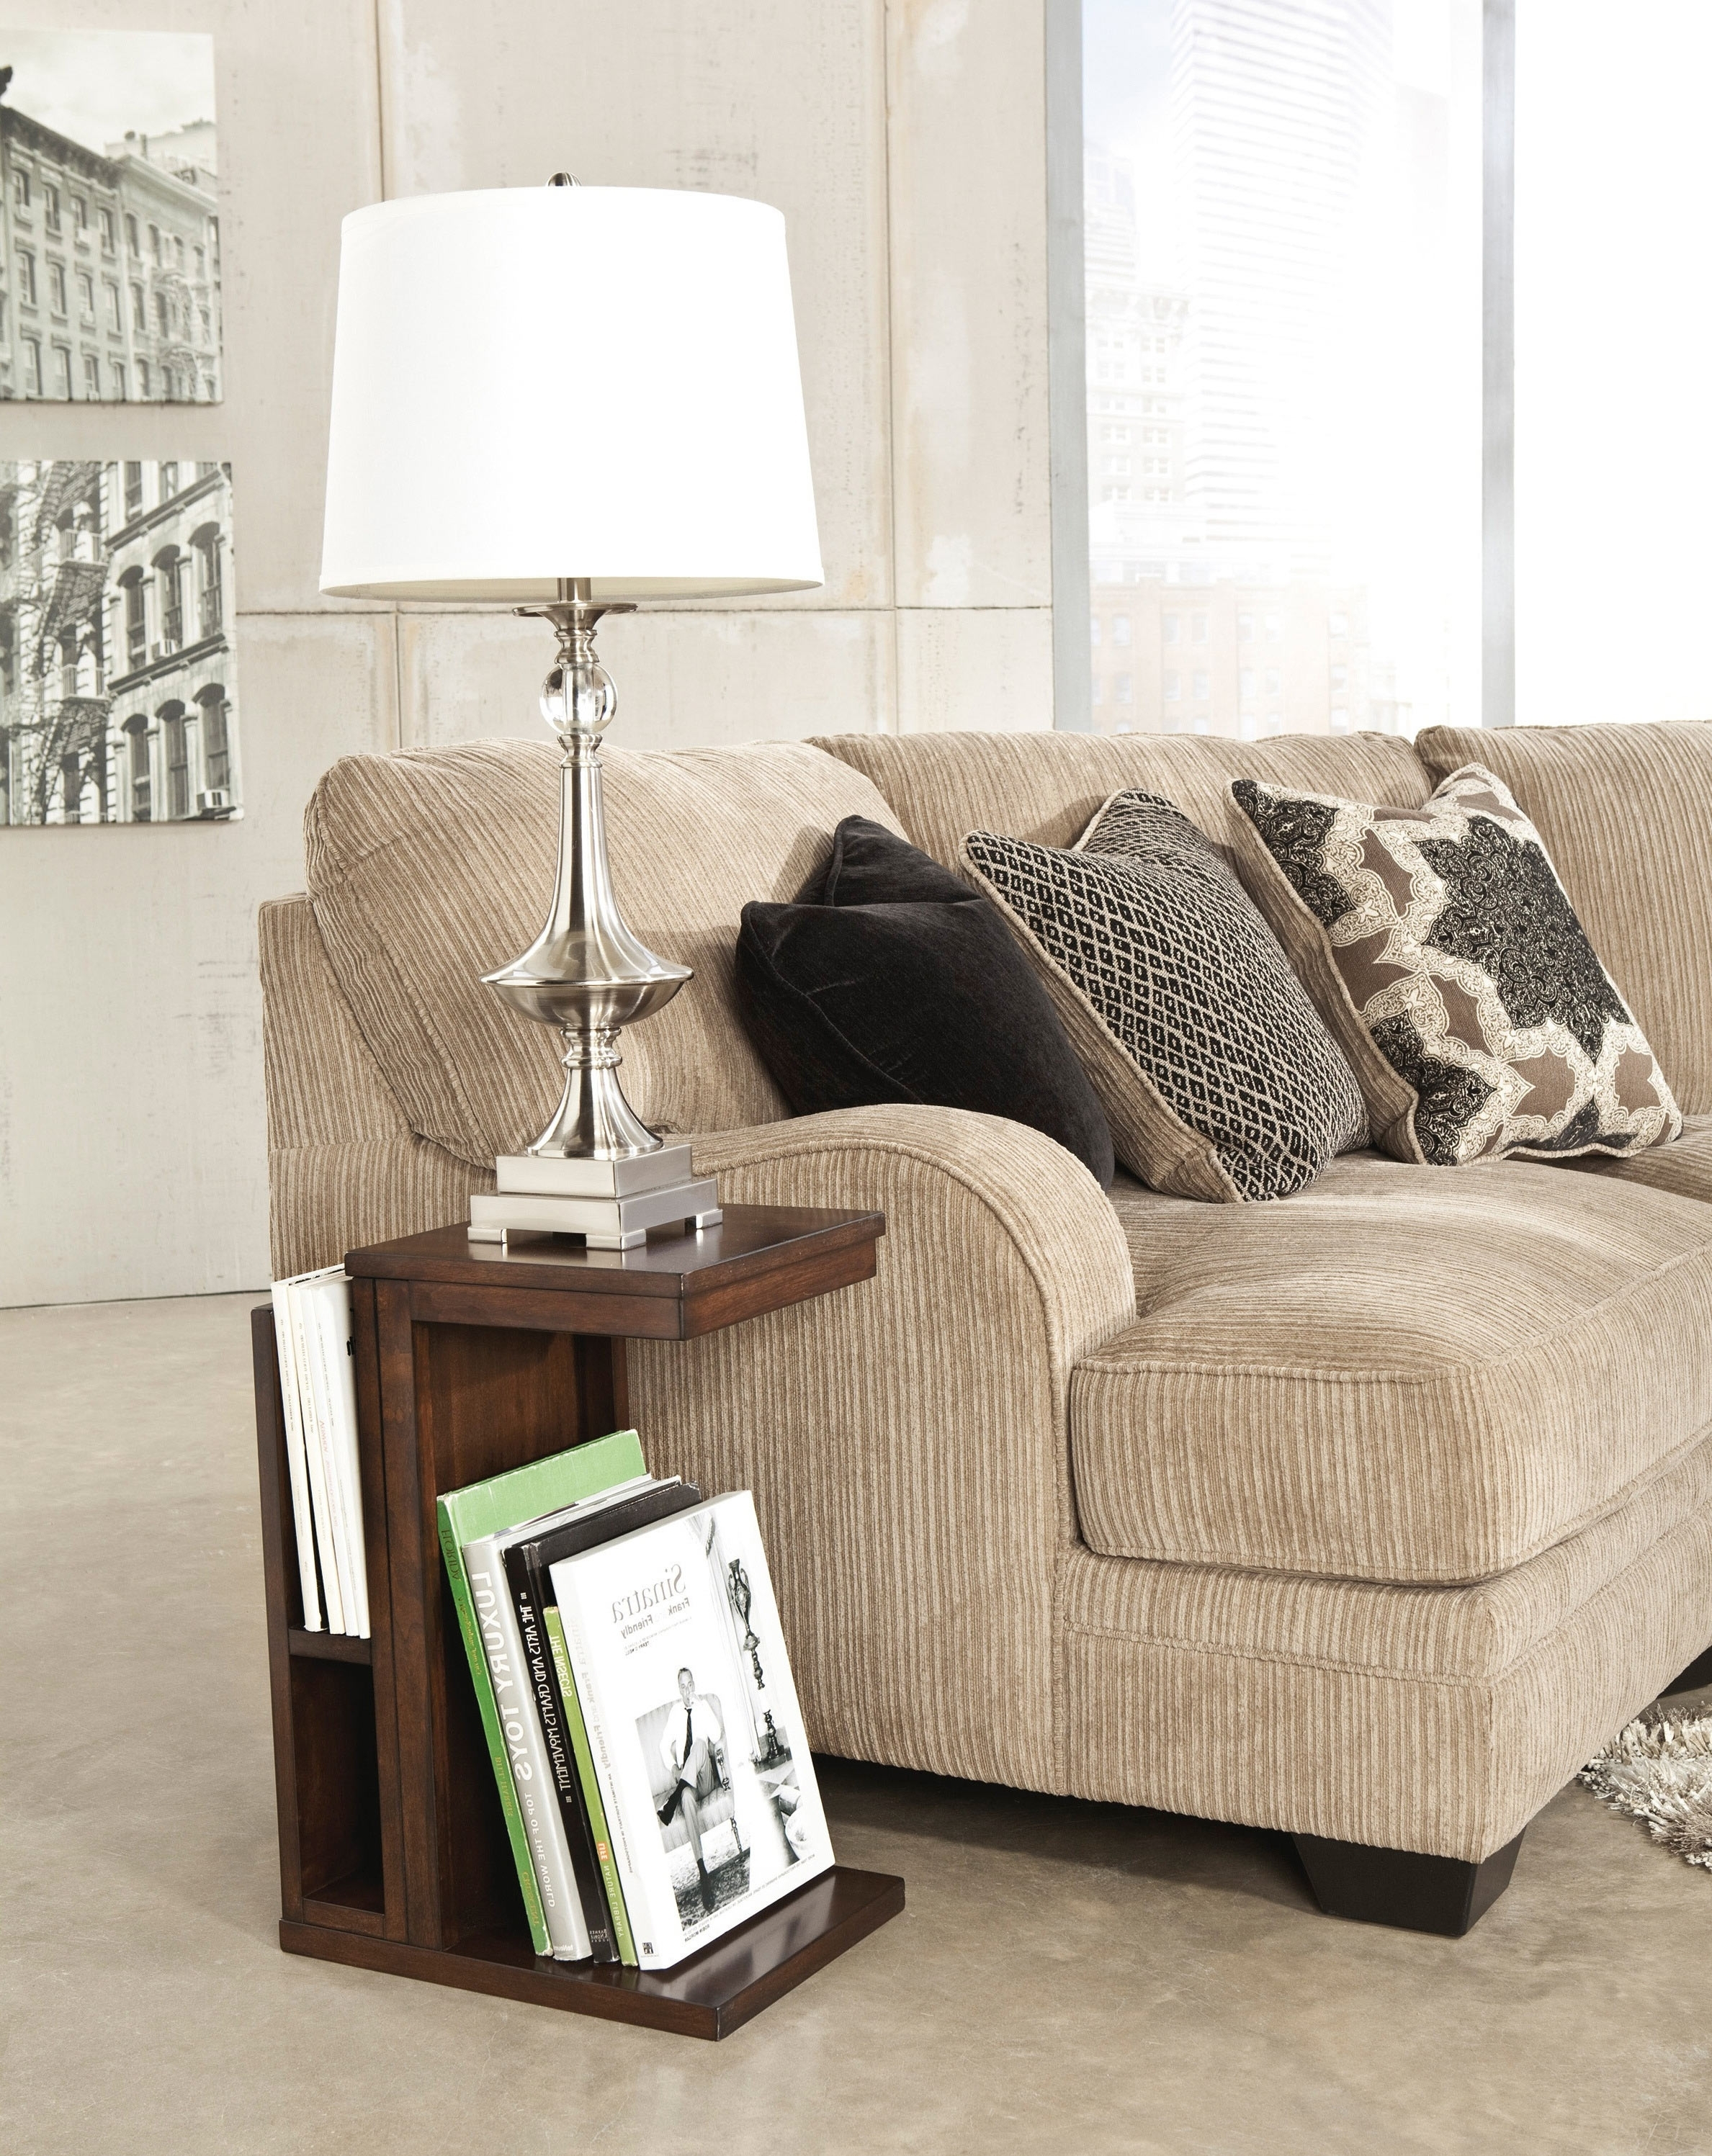 End Tables : Living Room Modern End Table Lamp Design With White With Living Room End Table Lamps (#8 of 15)